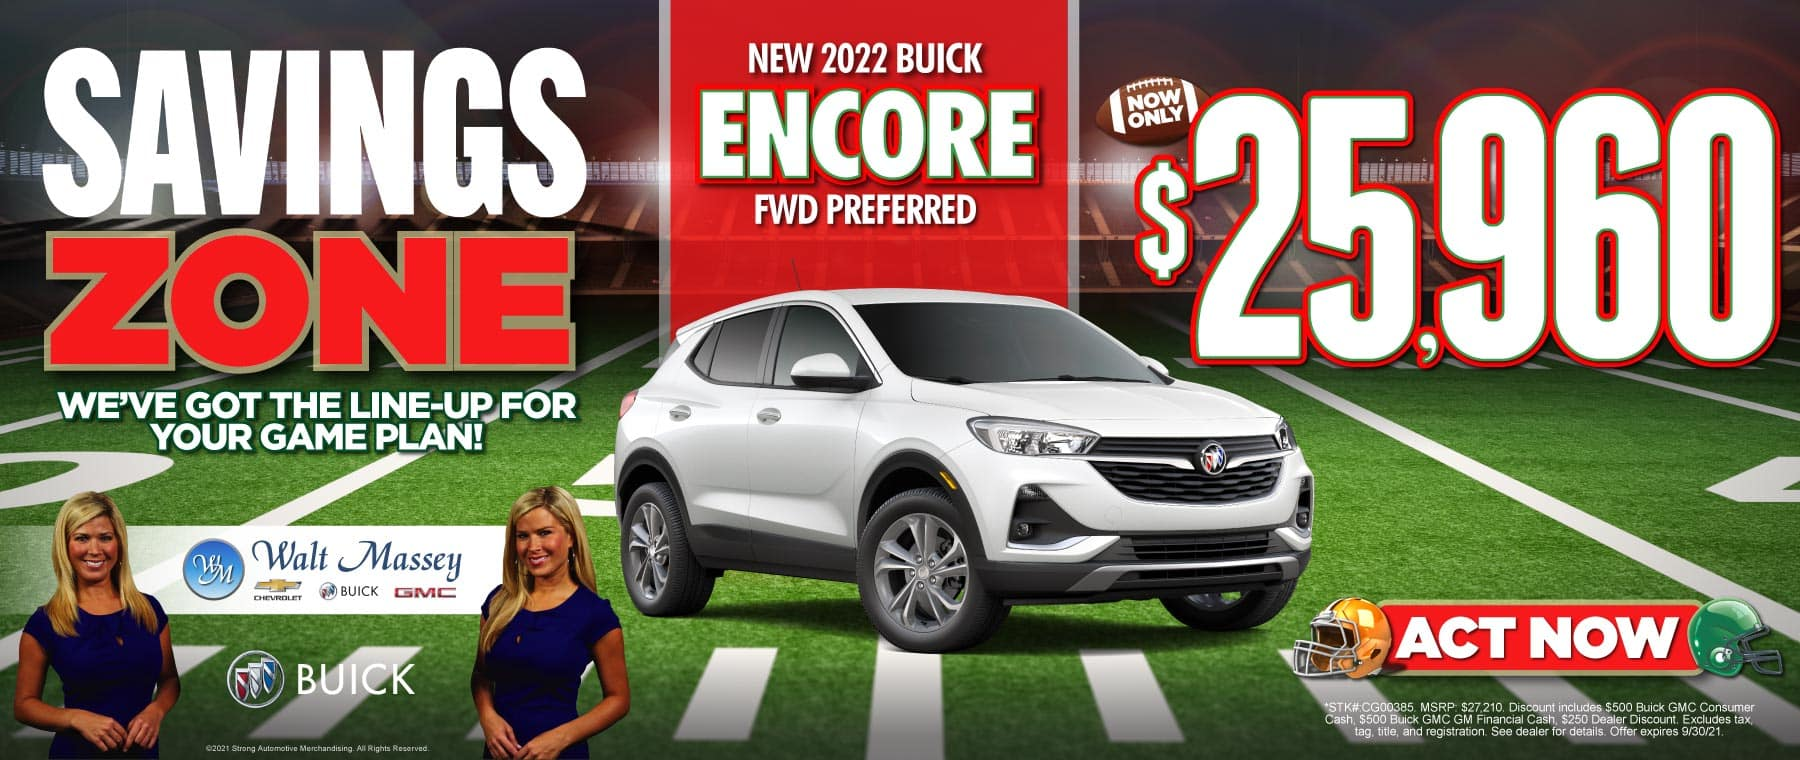 New 2022 Buick Encore FWD Preferred   Now Only $25,960   ACT NOW